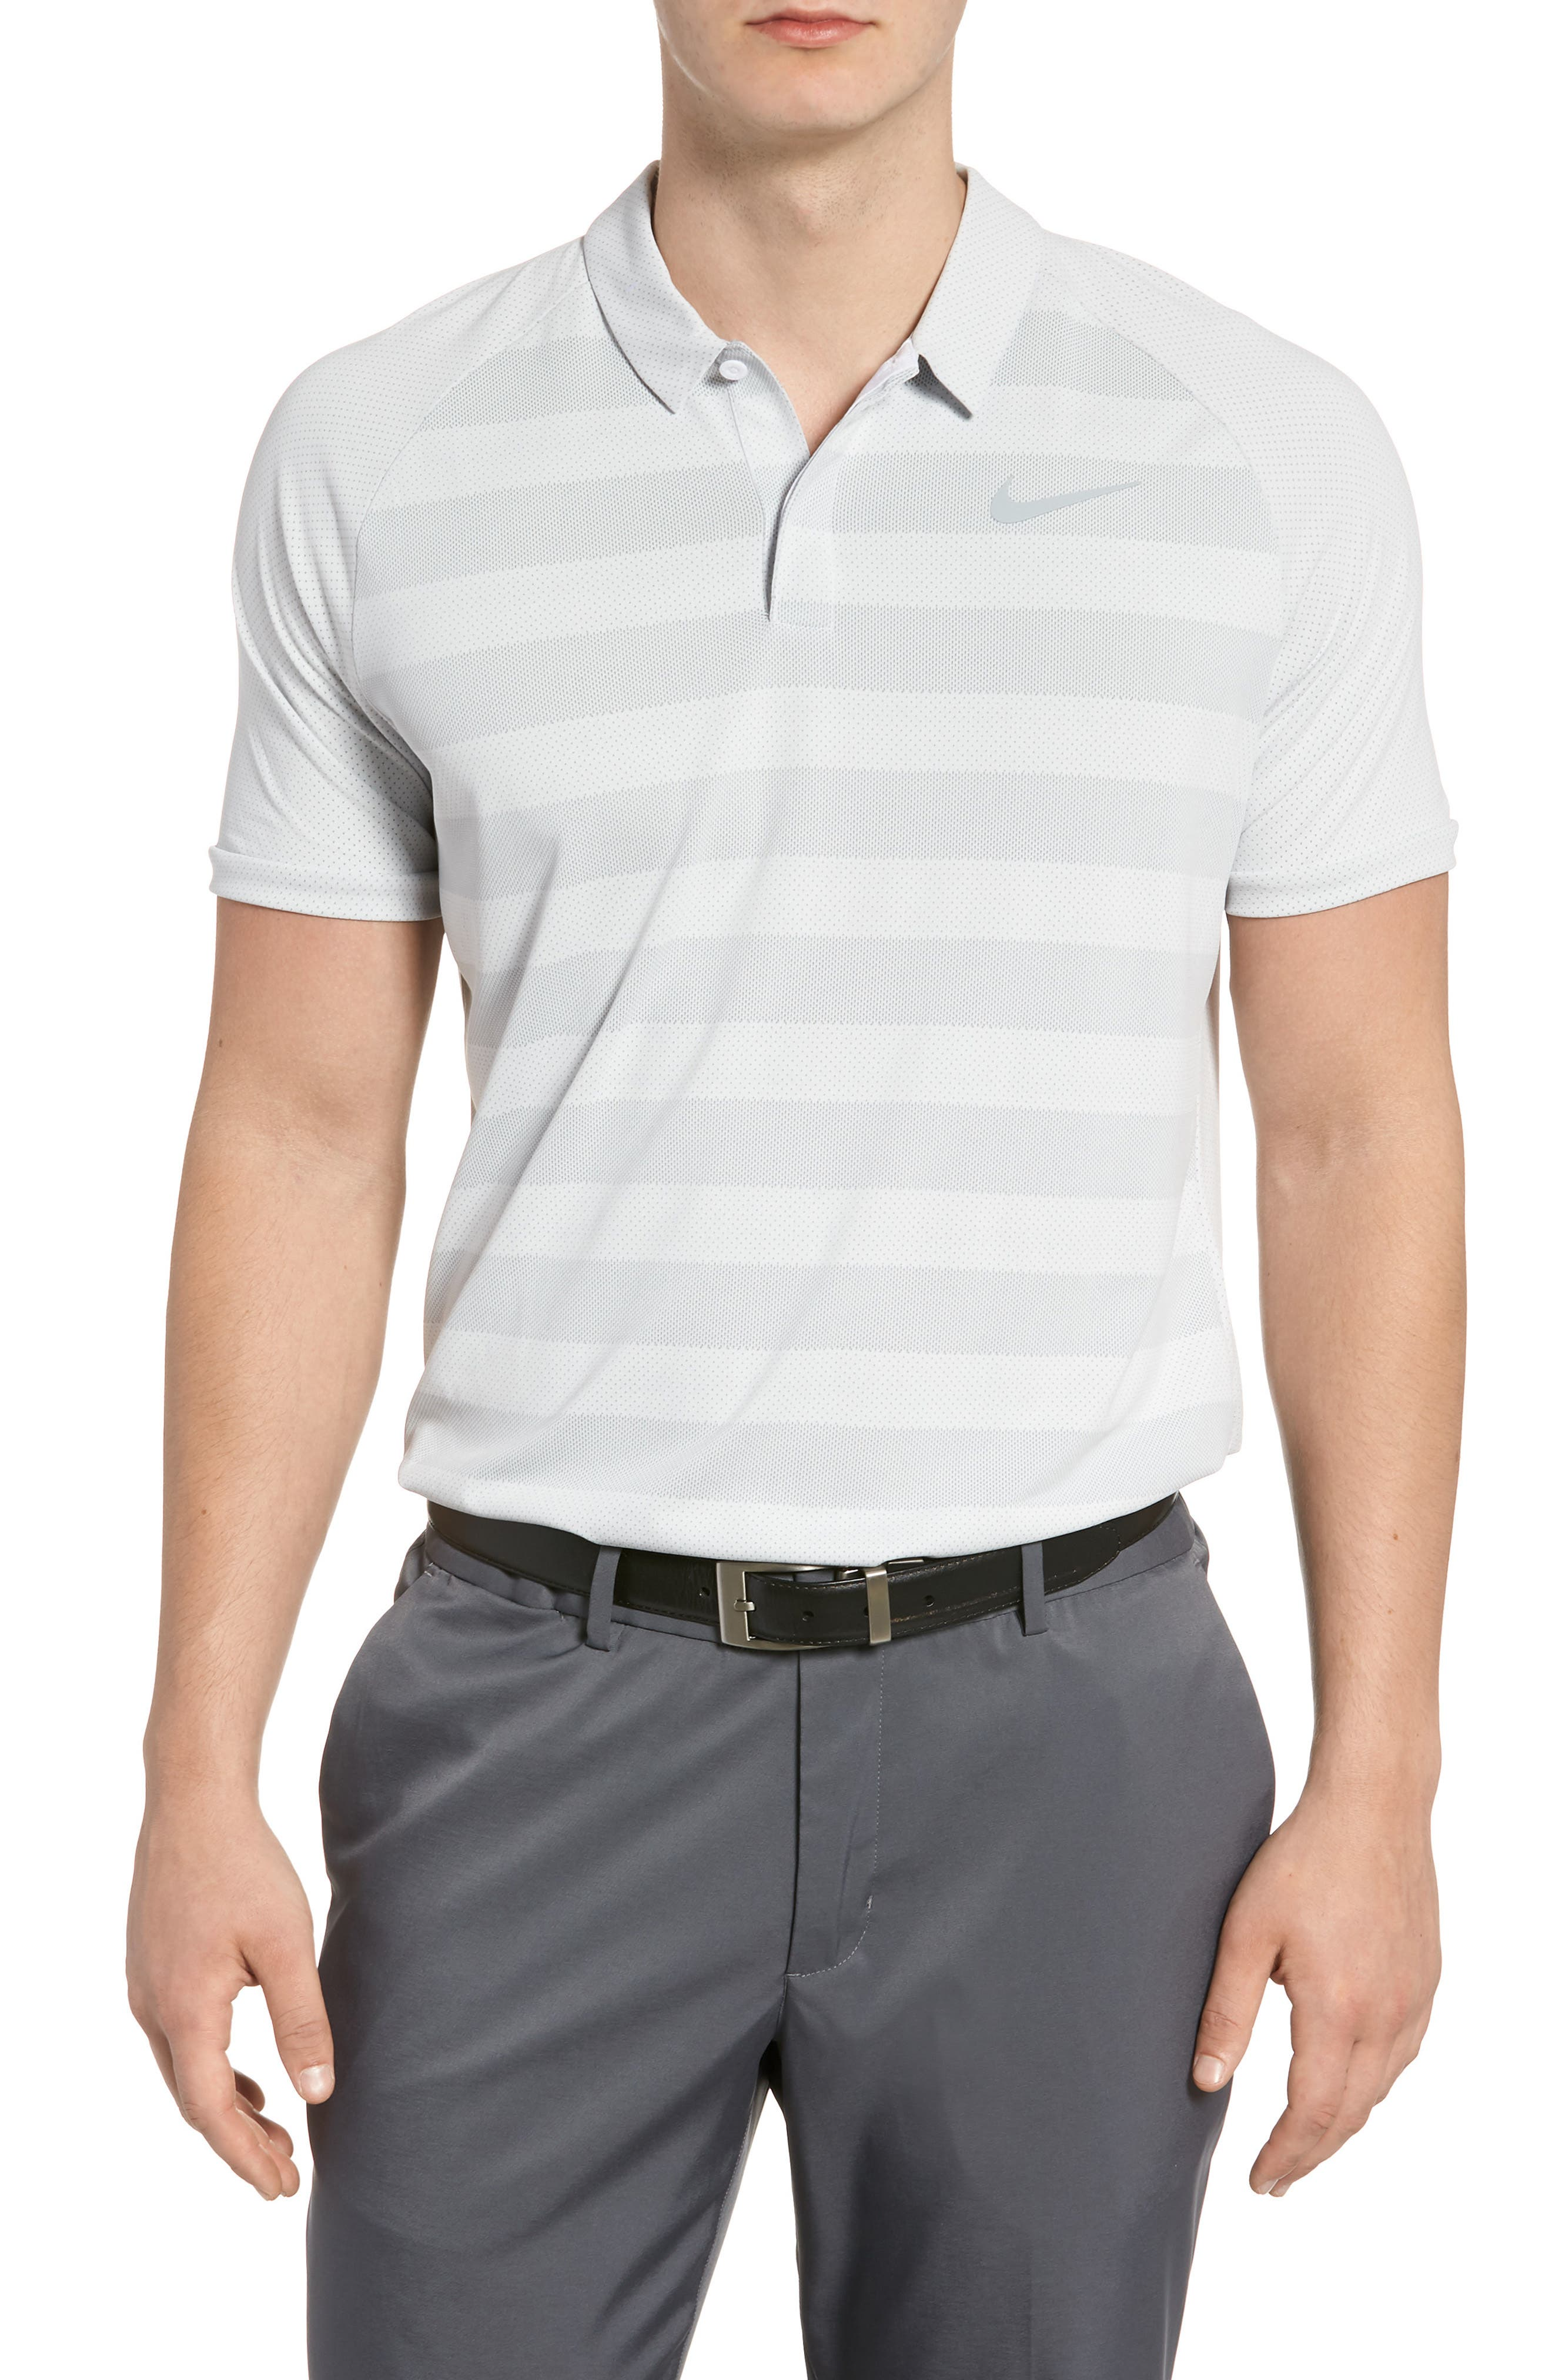 Nike Stripe Polo Shirt